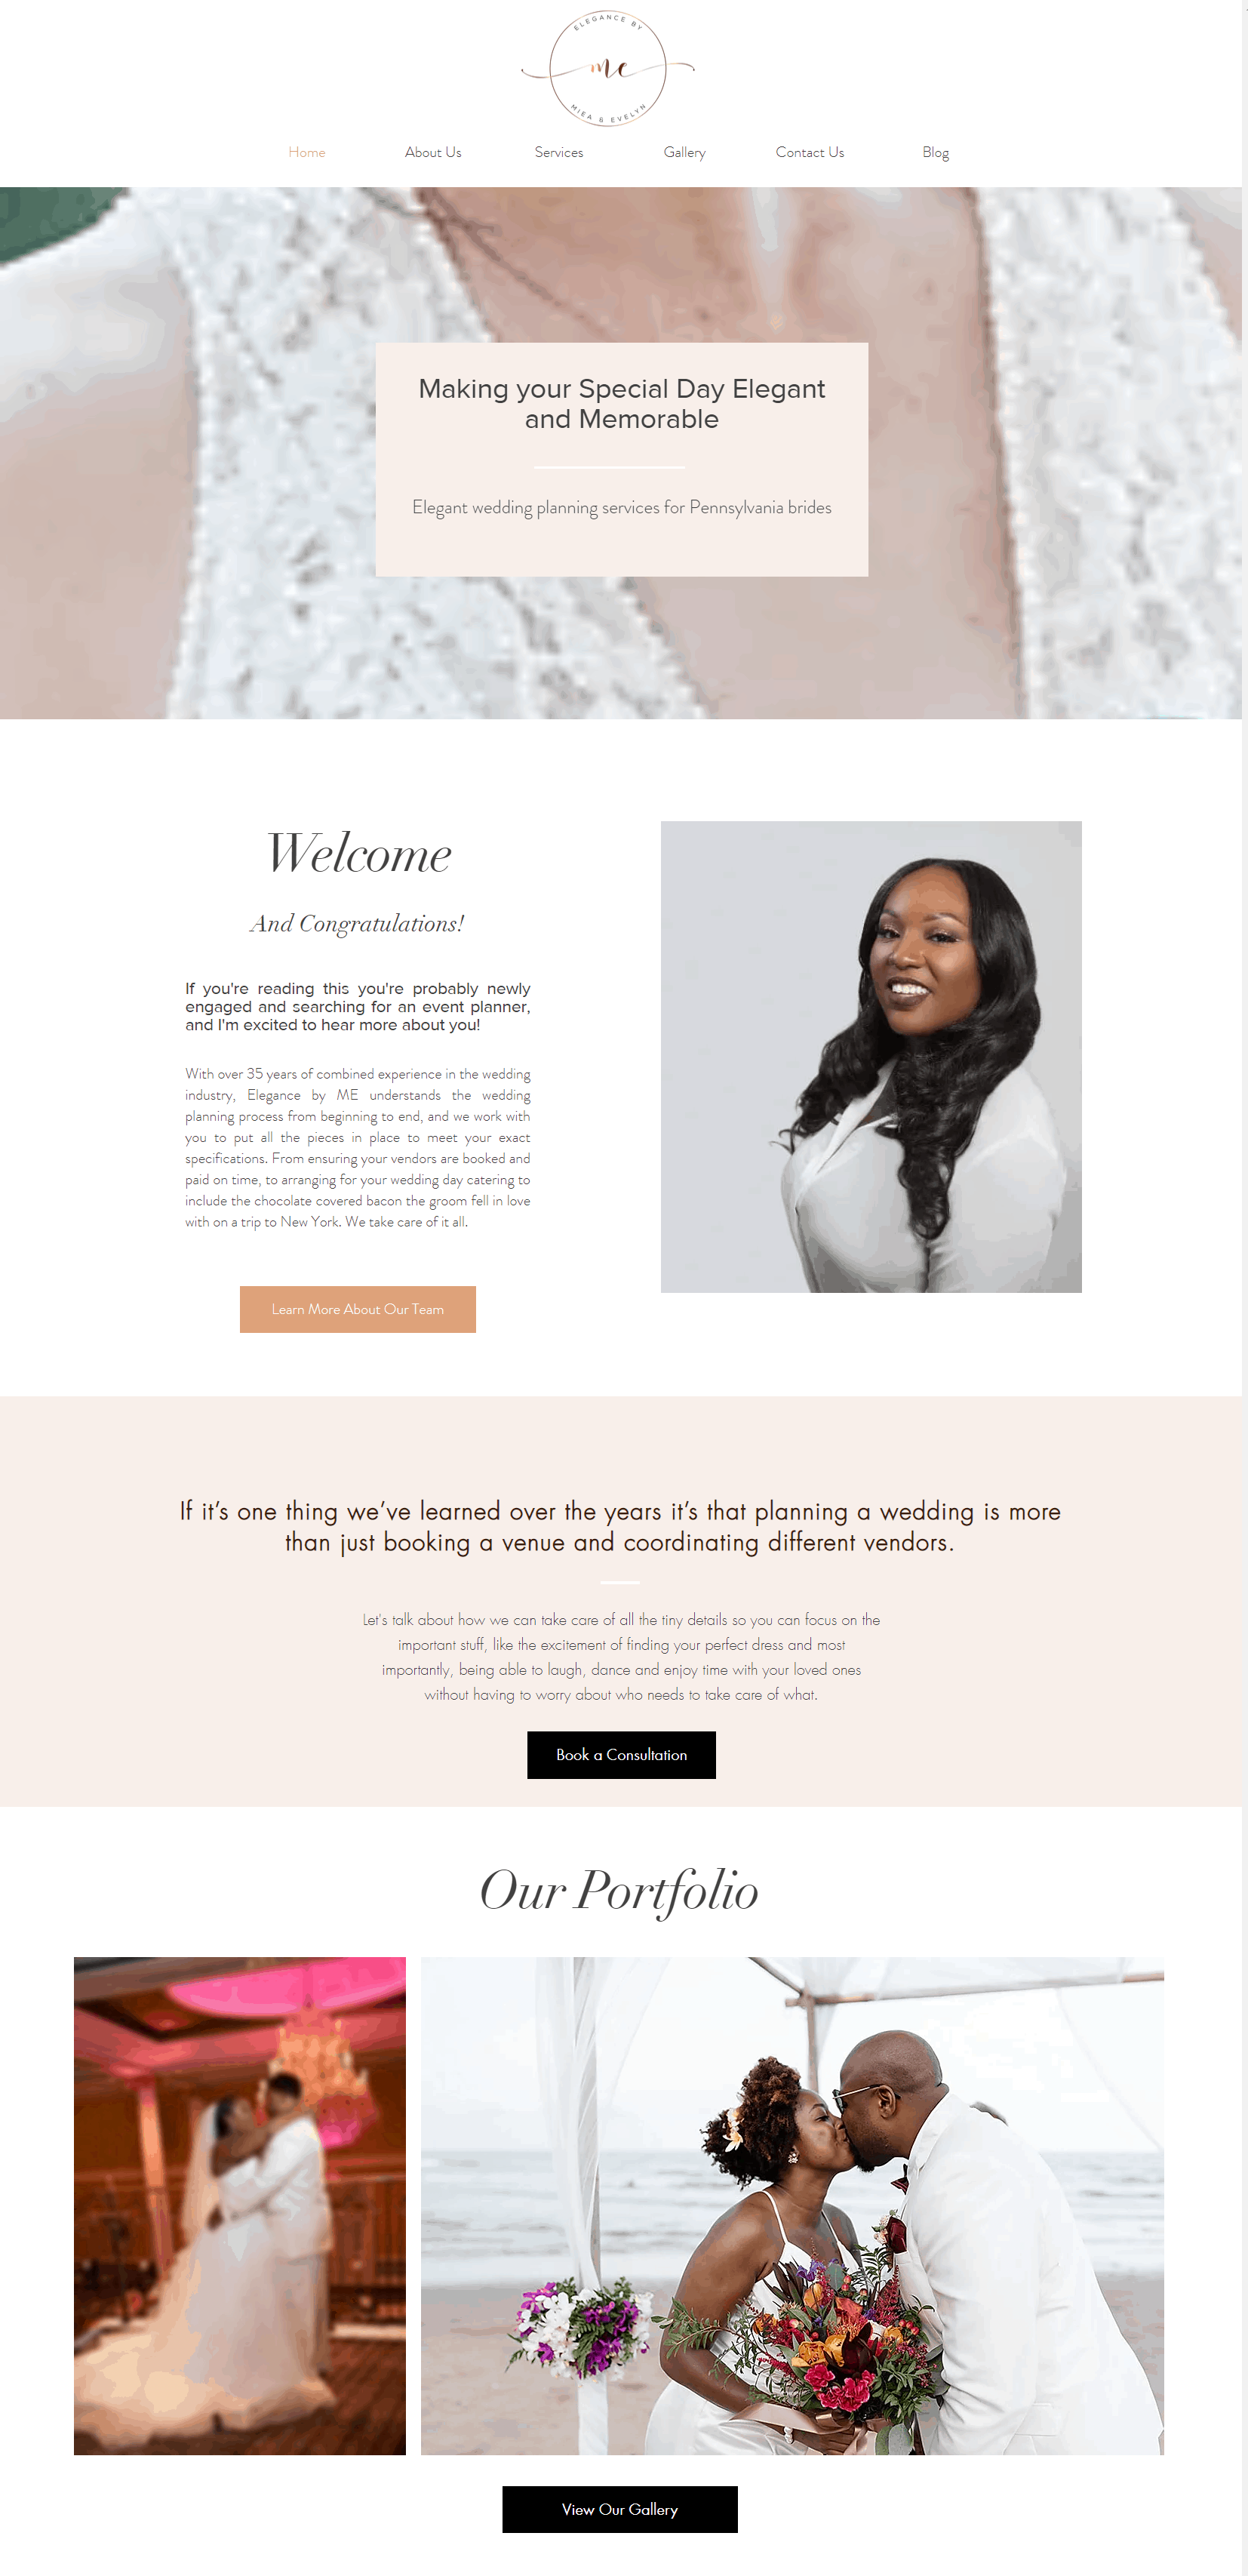 elegance by ME website design AFTER